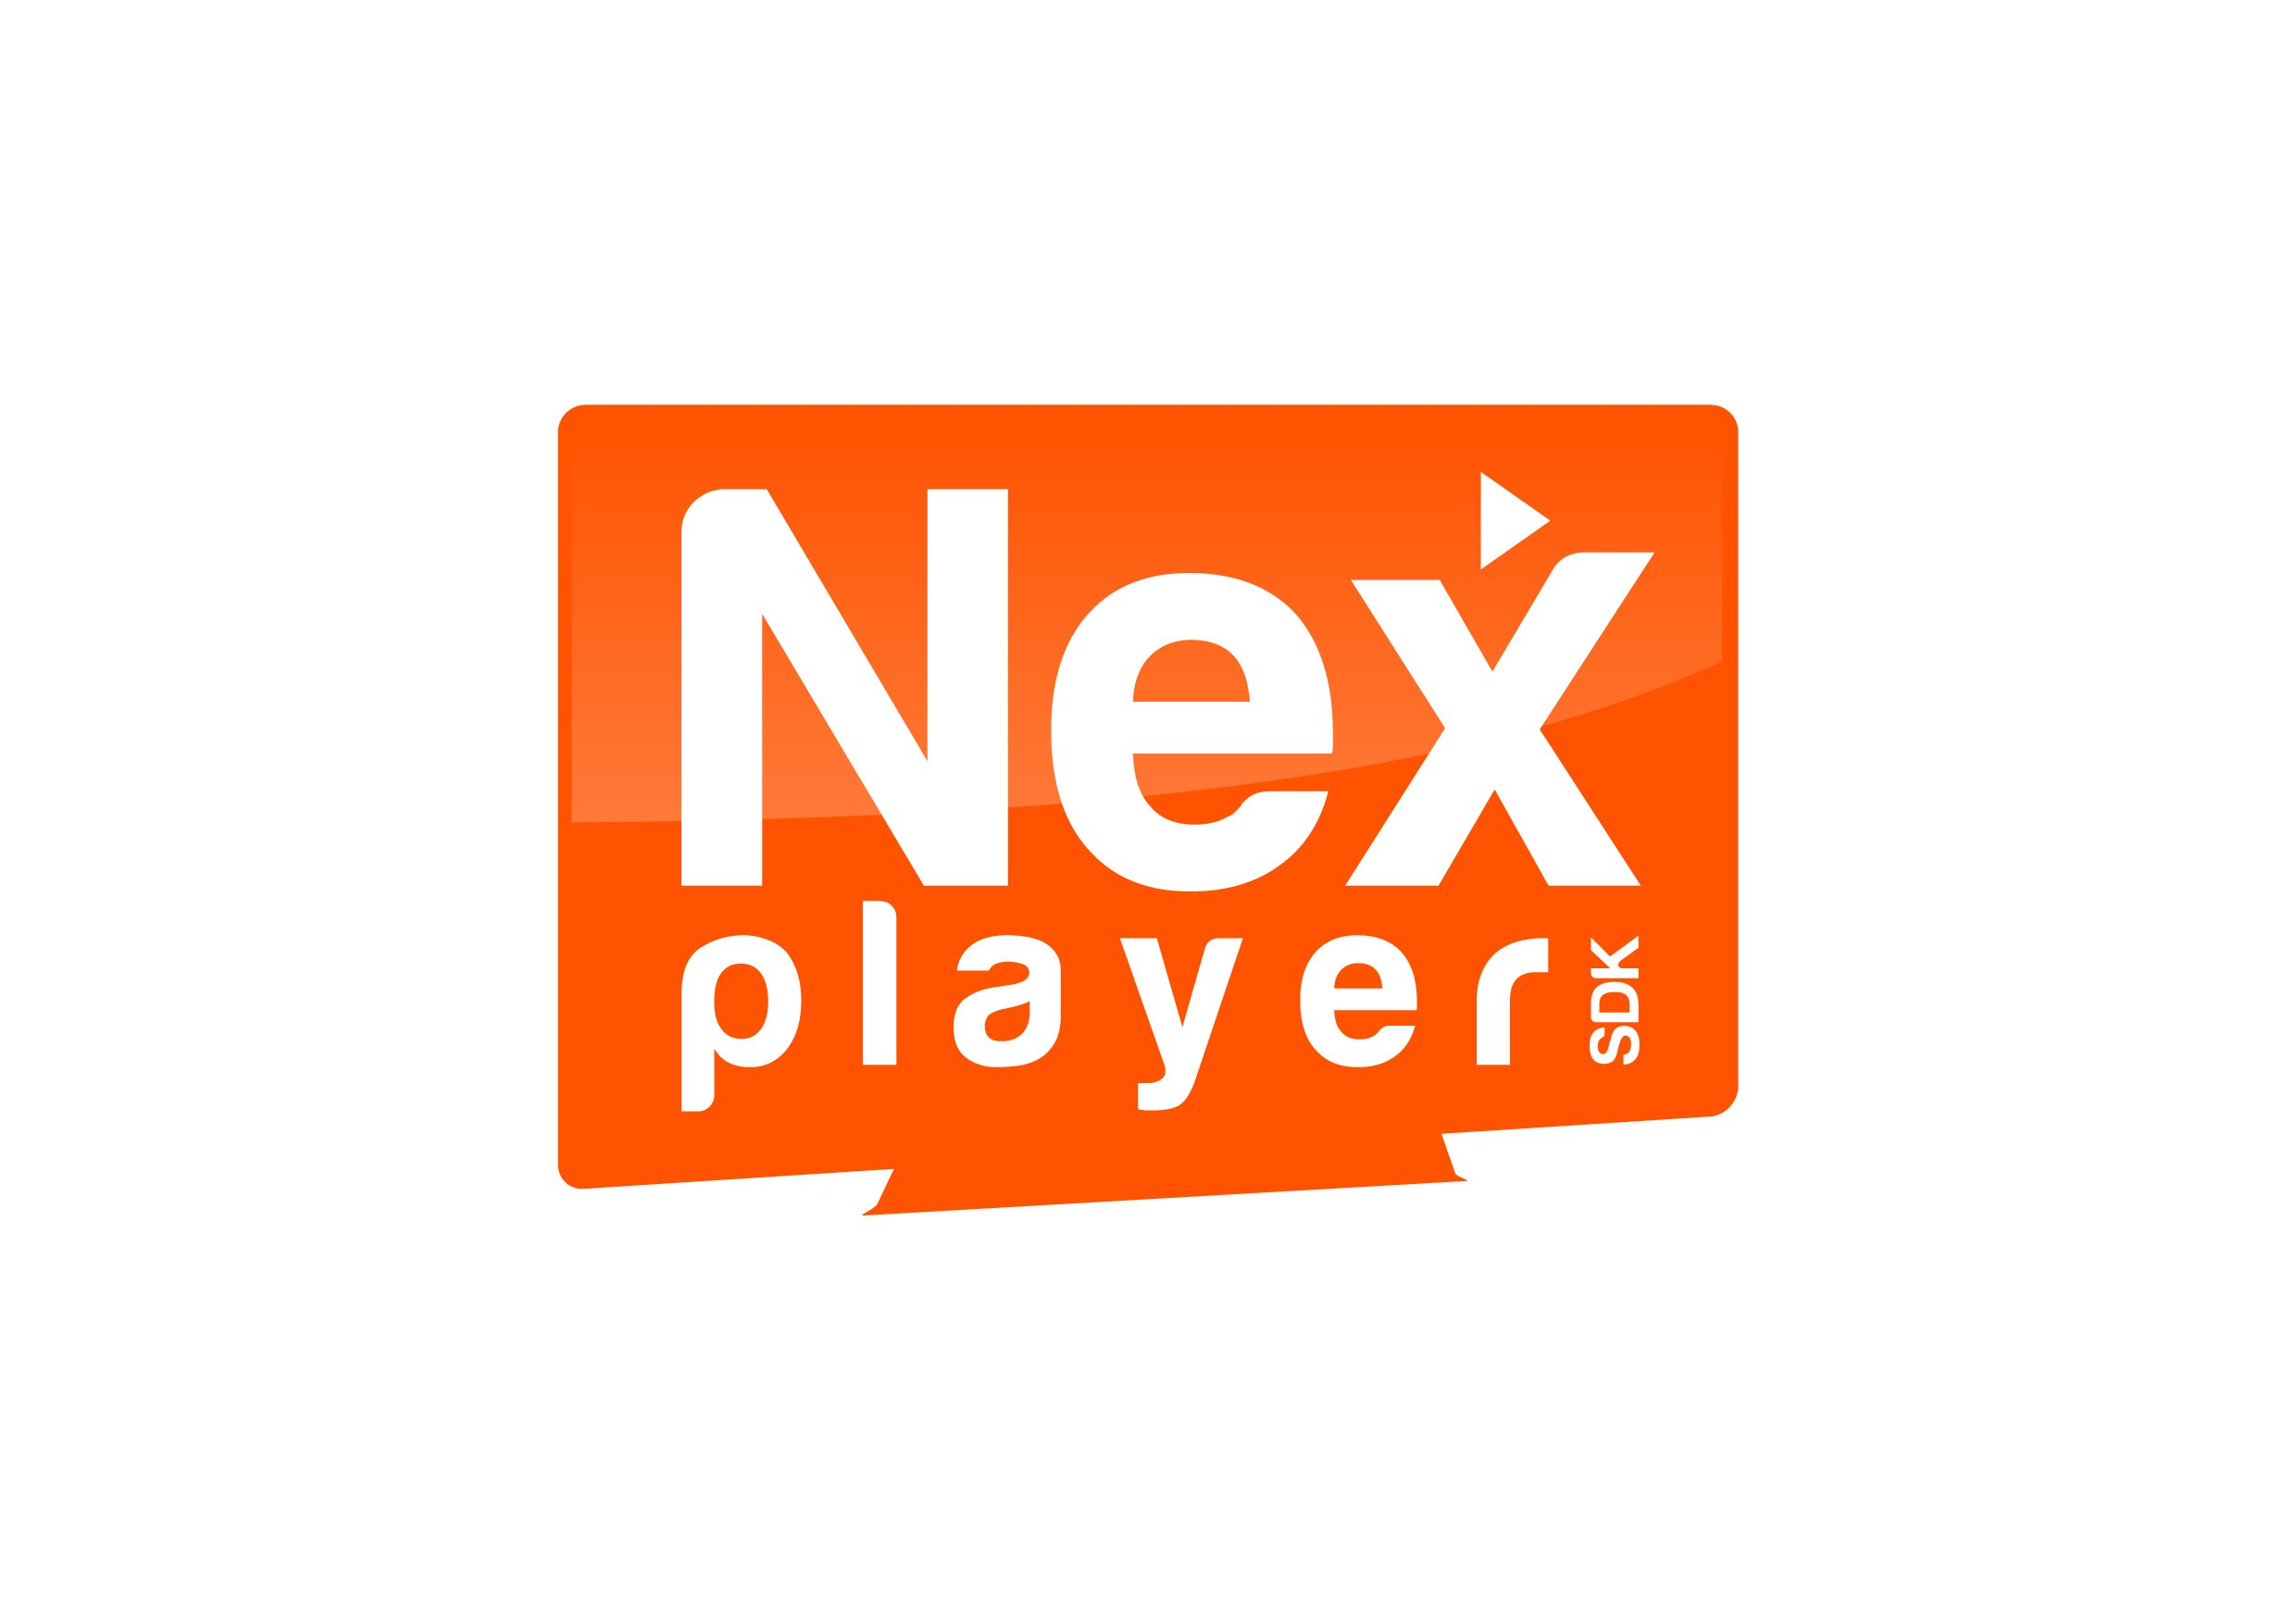 Widevine player sdk: nexplayer with pre-integrated drm.